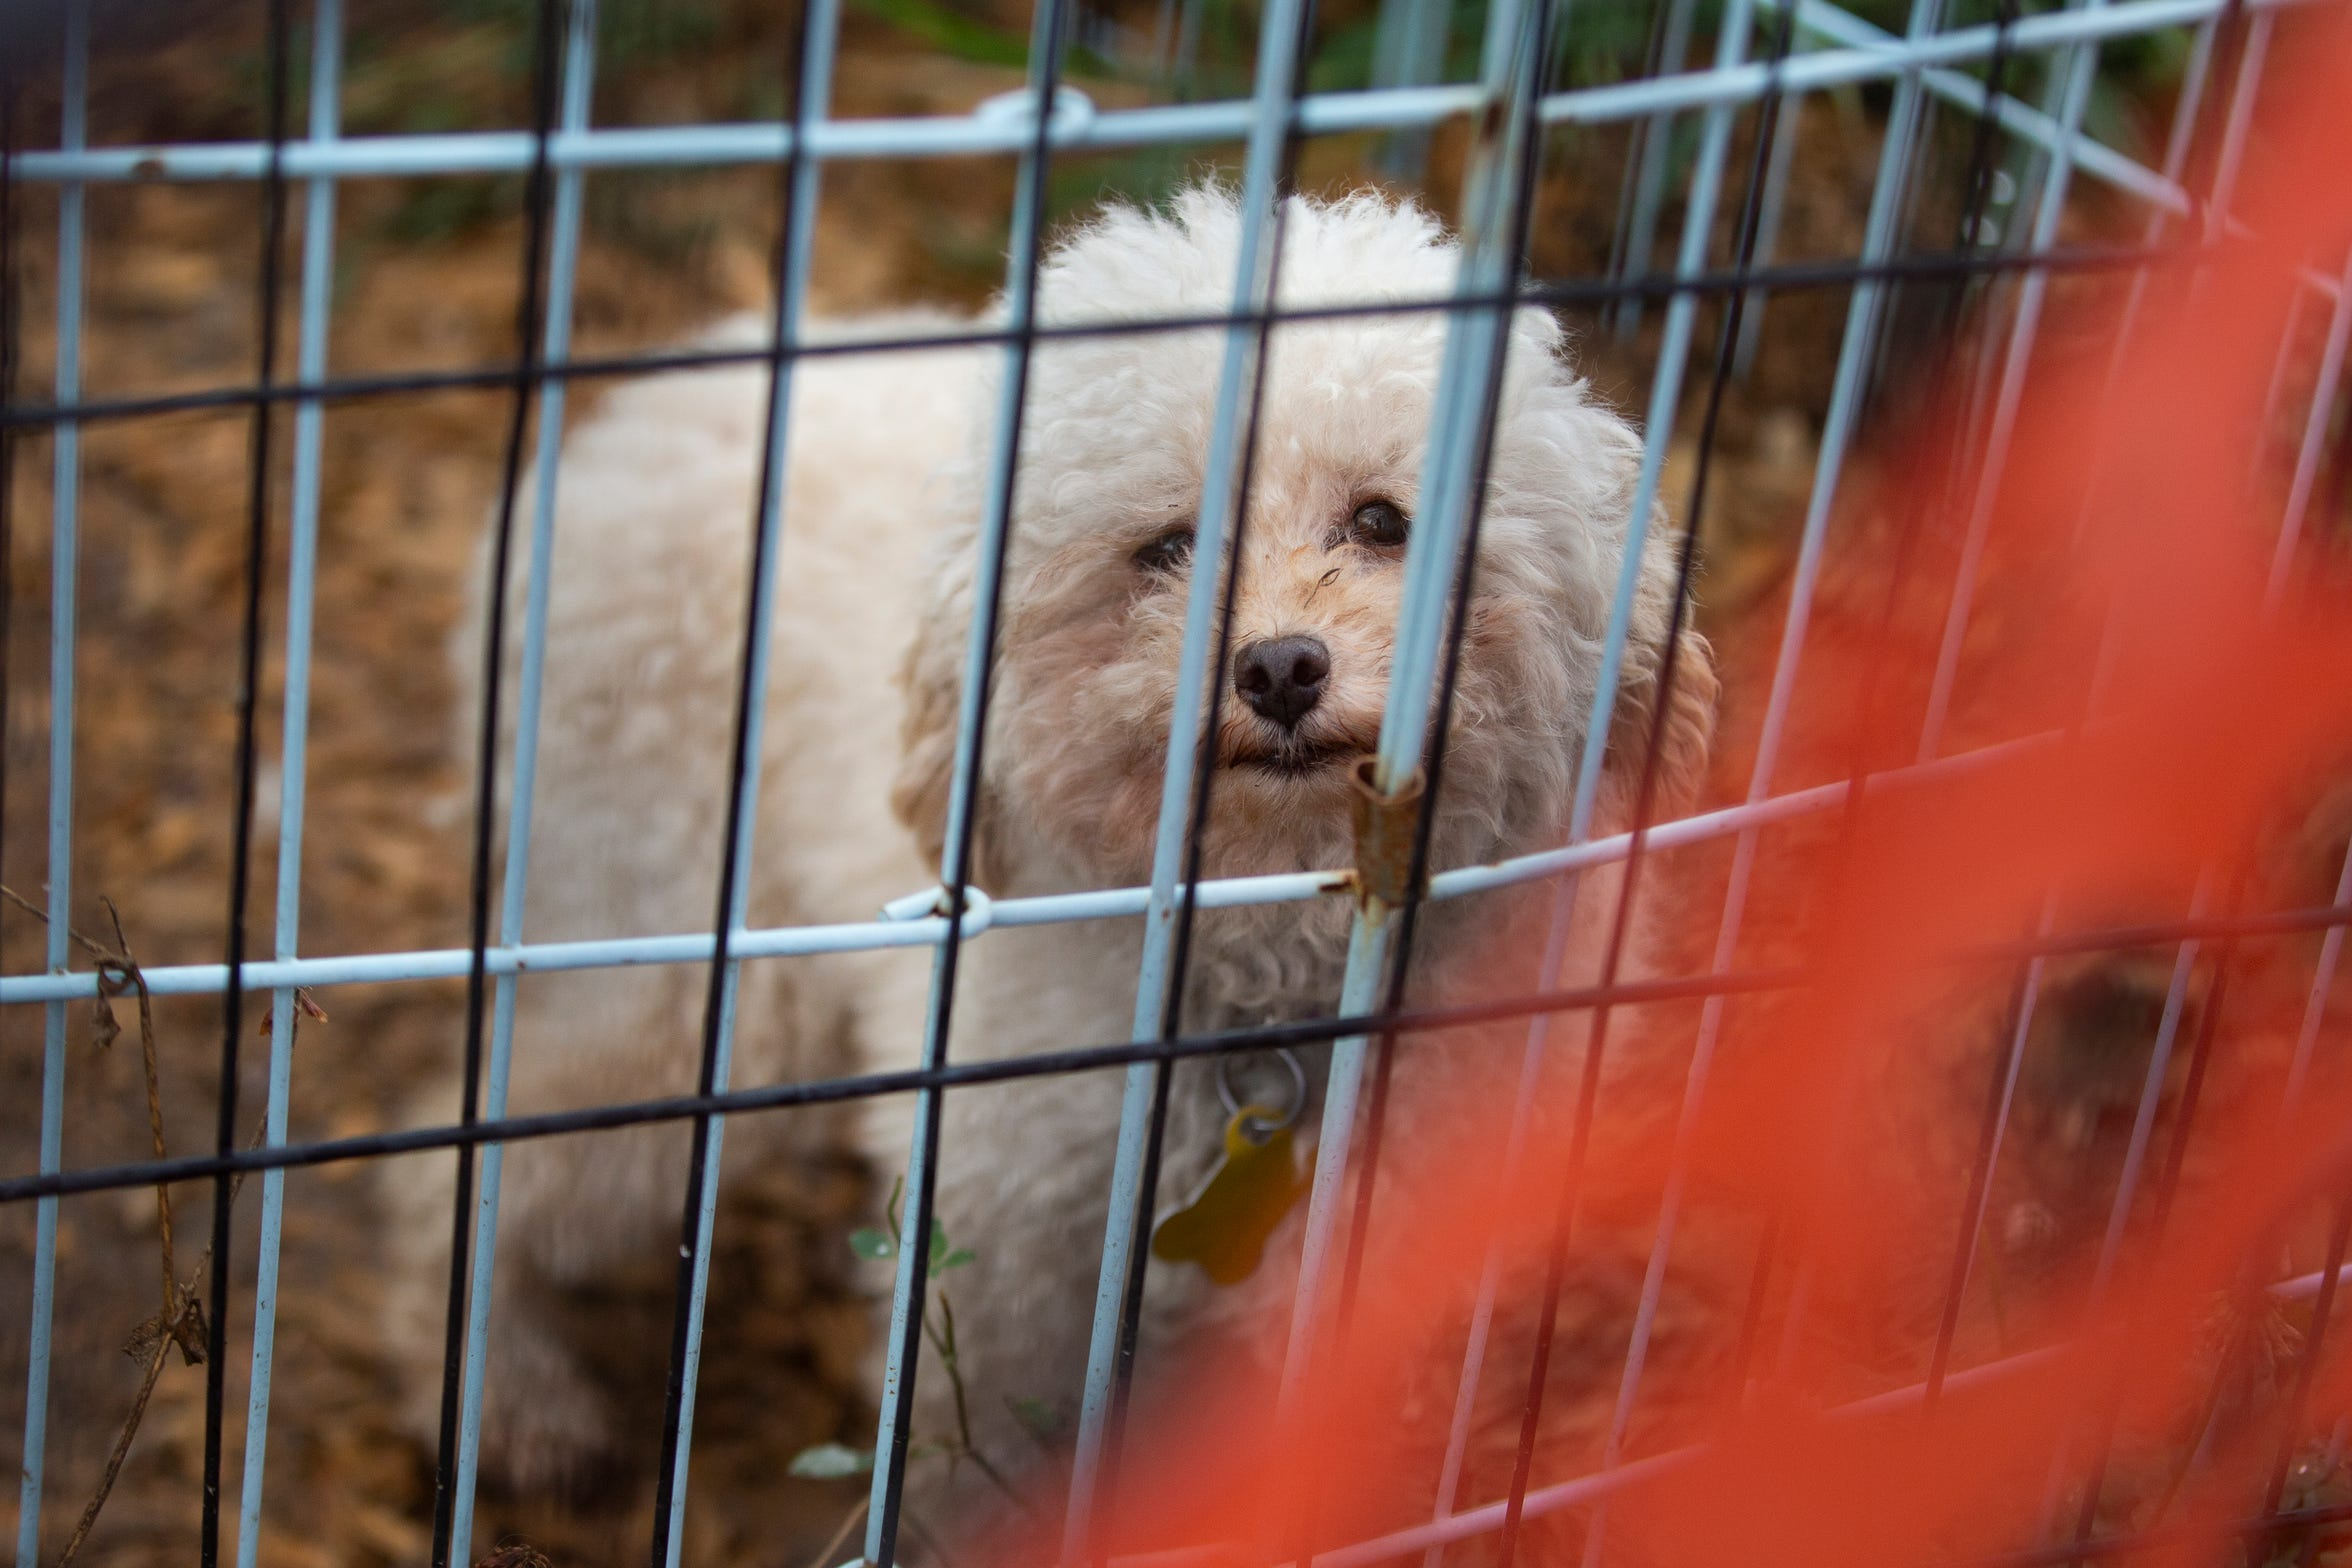 Peaches, 7, peers out of her pen at AHeinz57 Pet Rescue & Transport in De Soto, Iowa on July 31. Housed in the rescue center currently closed to the public, Peaches is one in a batch of over 30 dogs quarantined for up three months due to spreading of the incurable canine brucellosis.